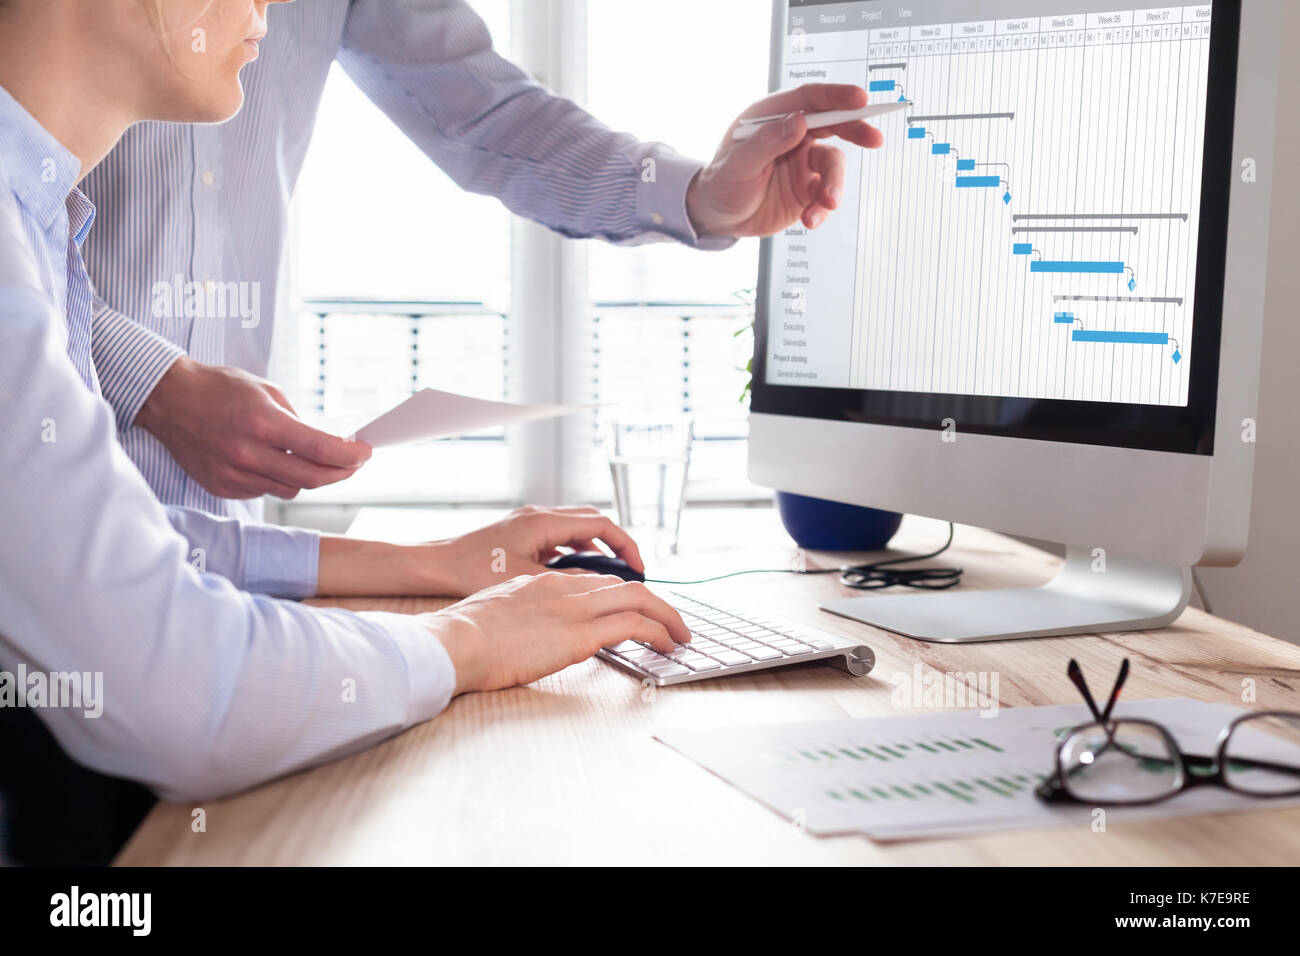 Project management team updating Gantt chart schedule or planning on computer, two business people in office - Stock Image